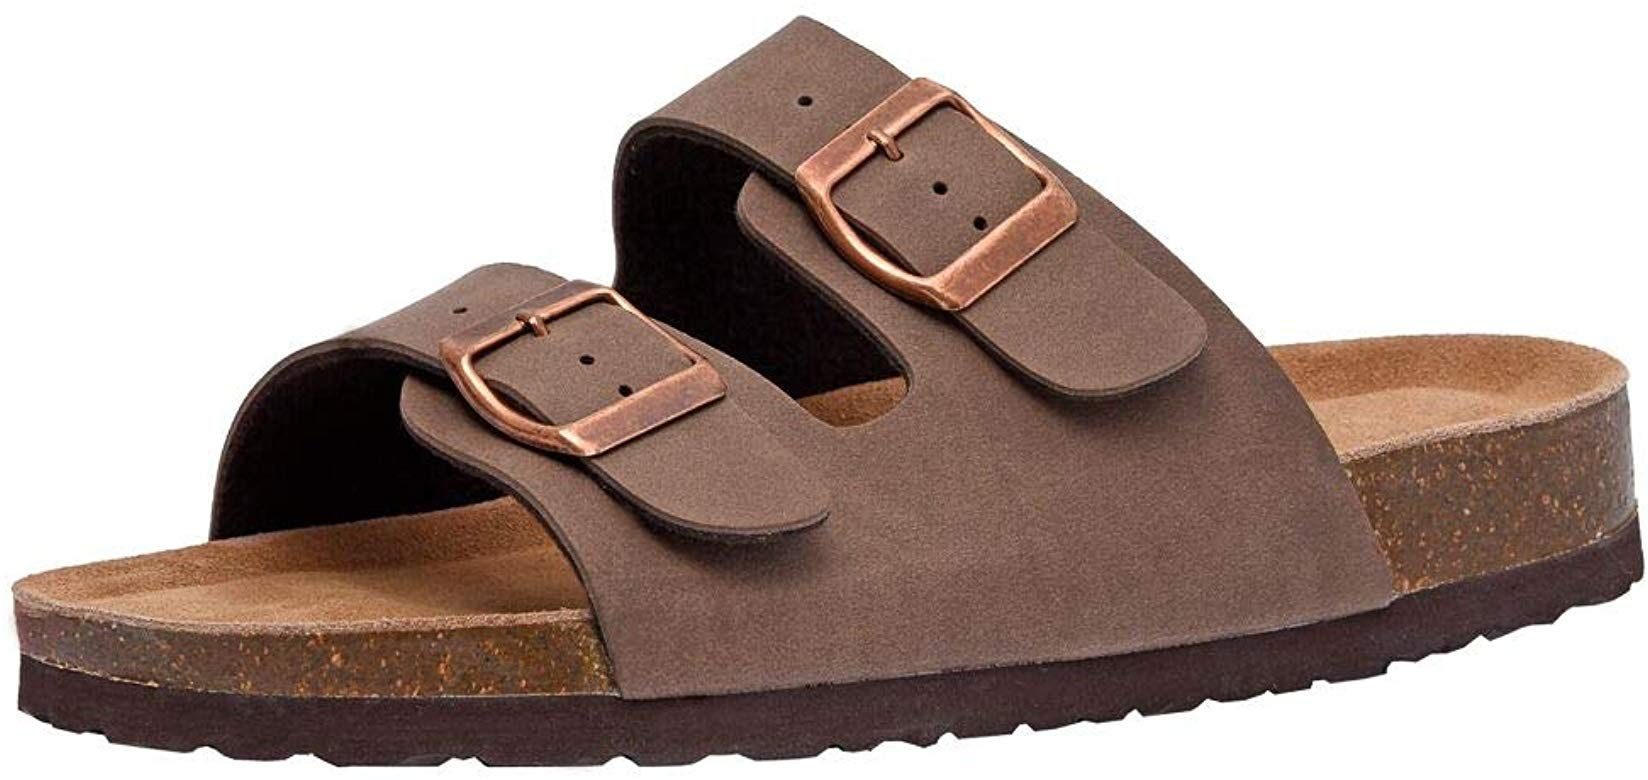 Amazon Com Cushionaire Women S Lane Slide Sandals Brown 8 5 M Slides Cork Footbed Sandals Footbed Sandals Womens Sandals